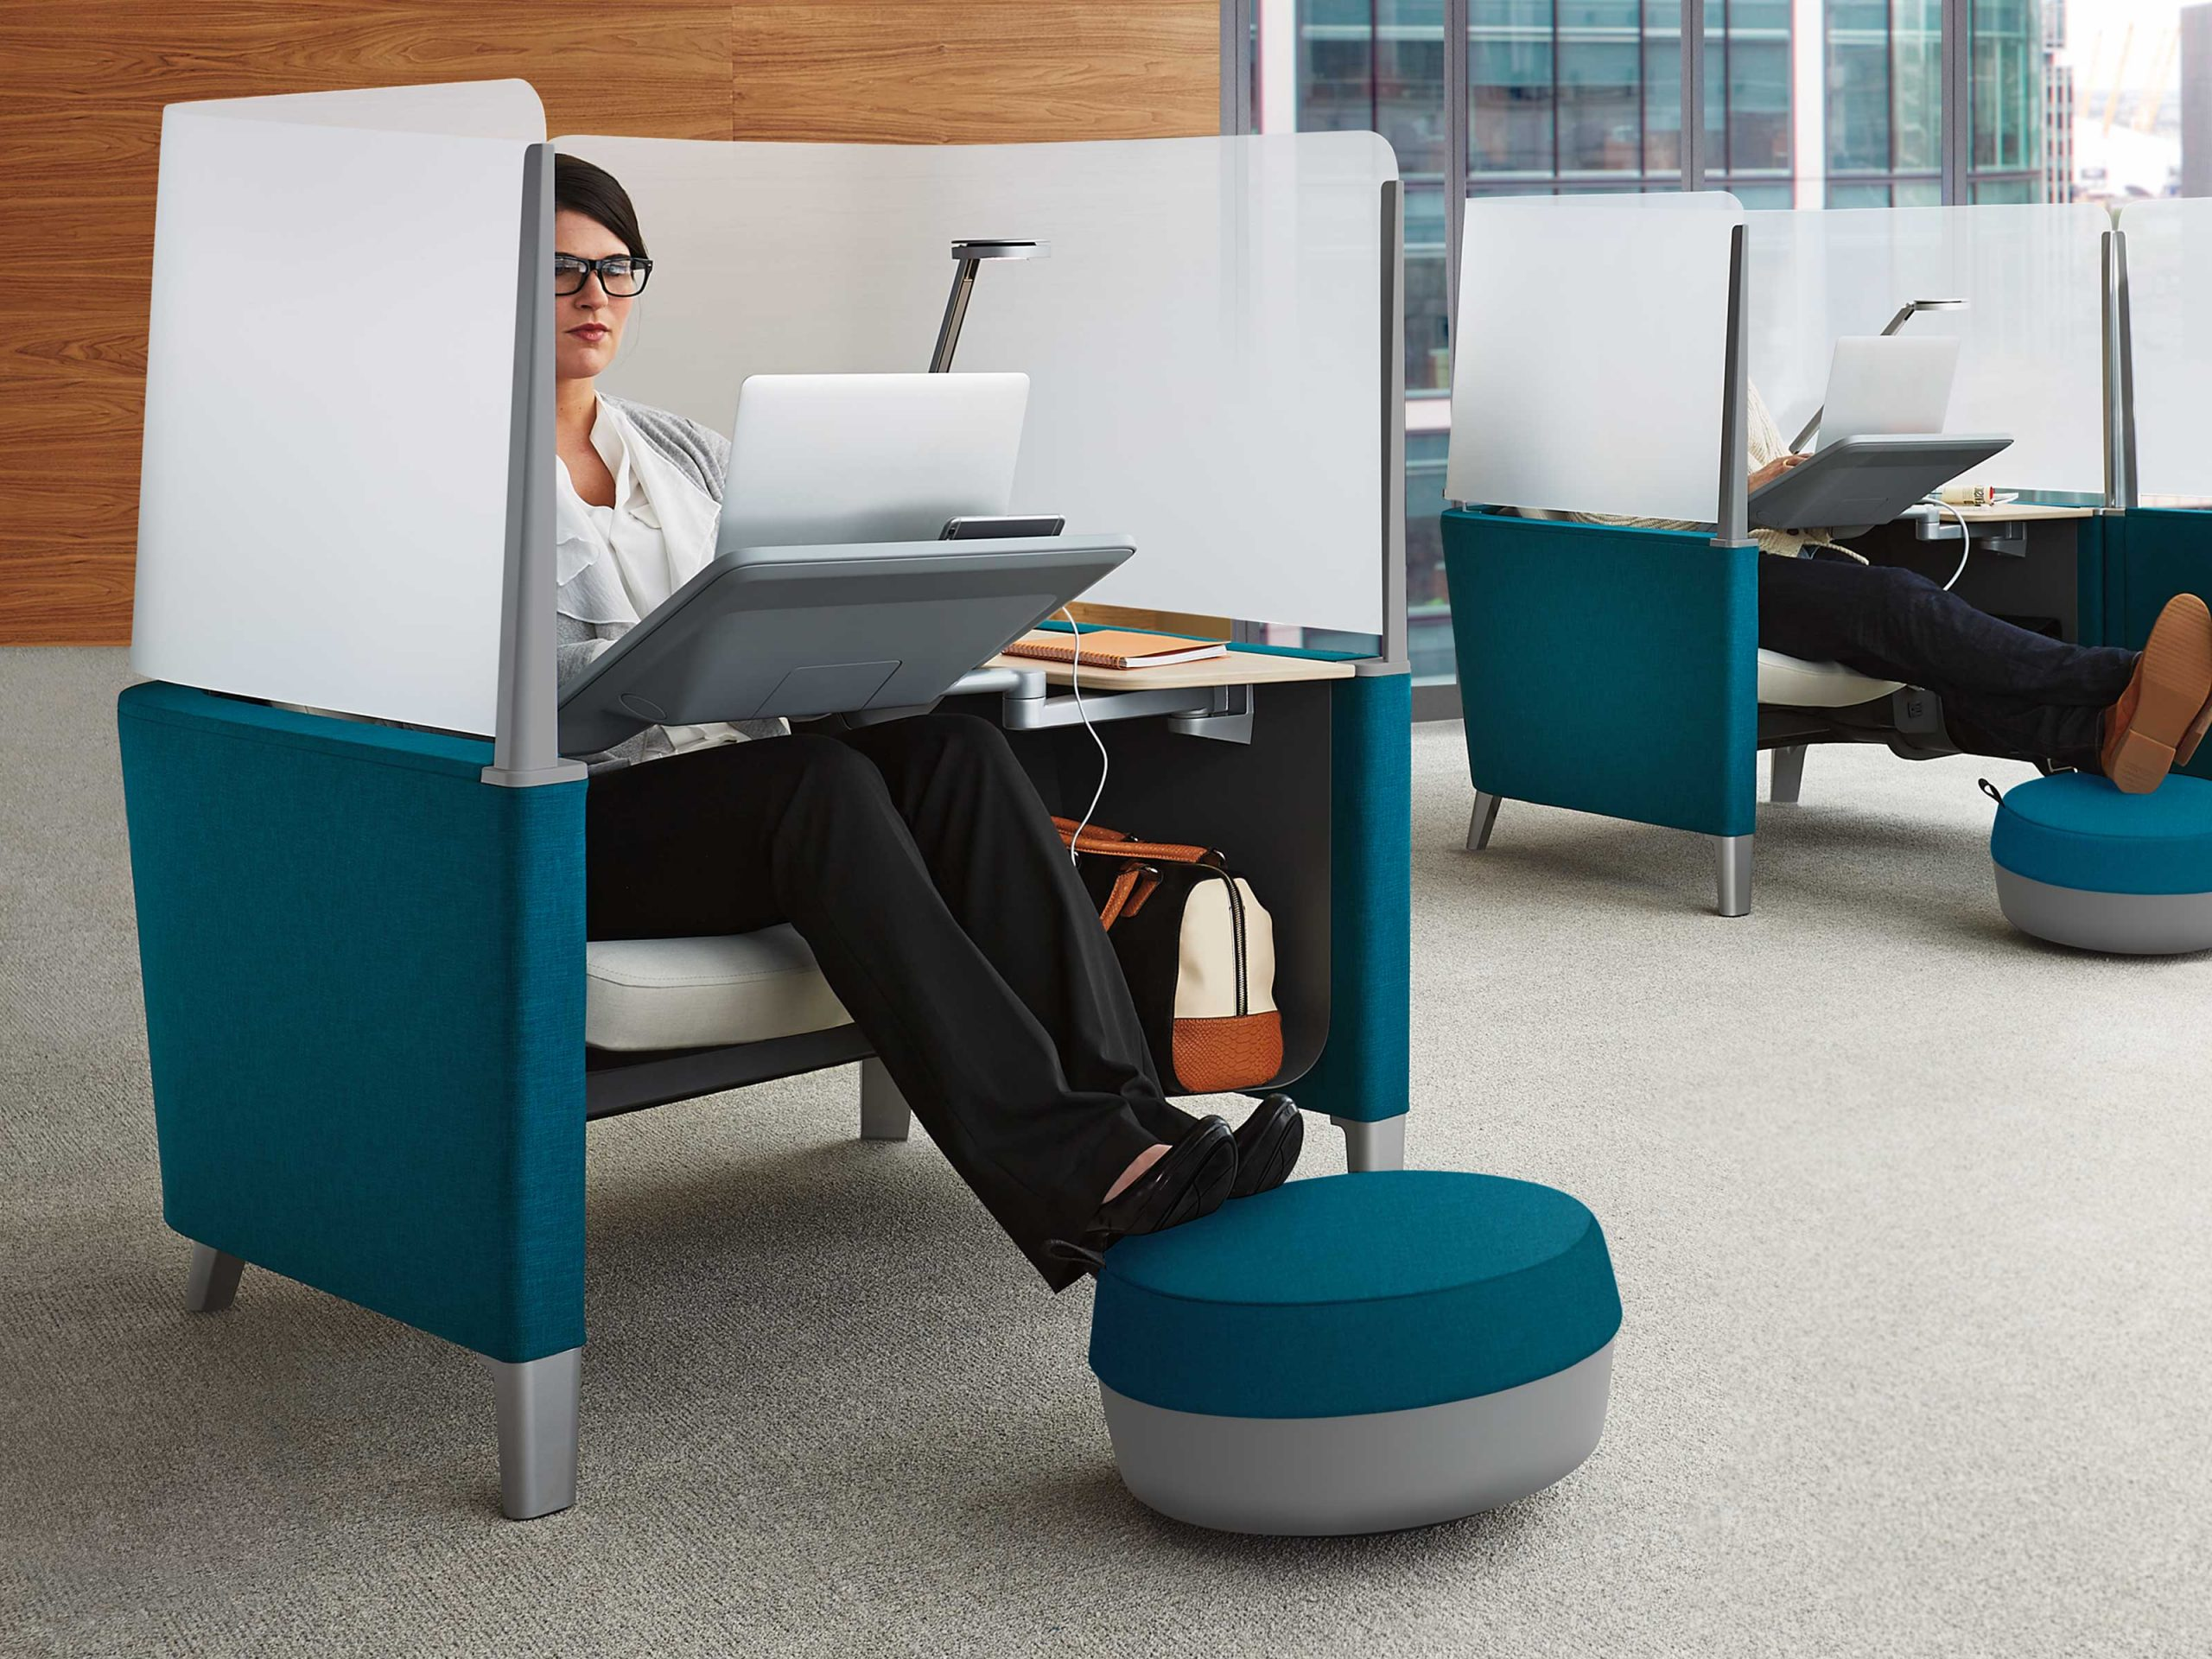 foot stool for desk at work